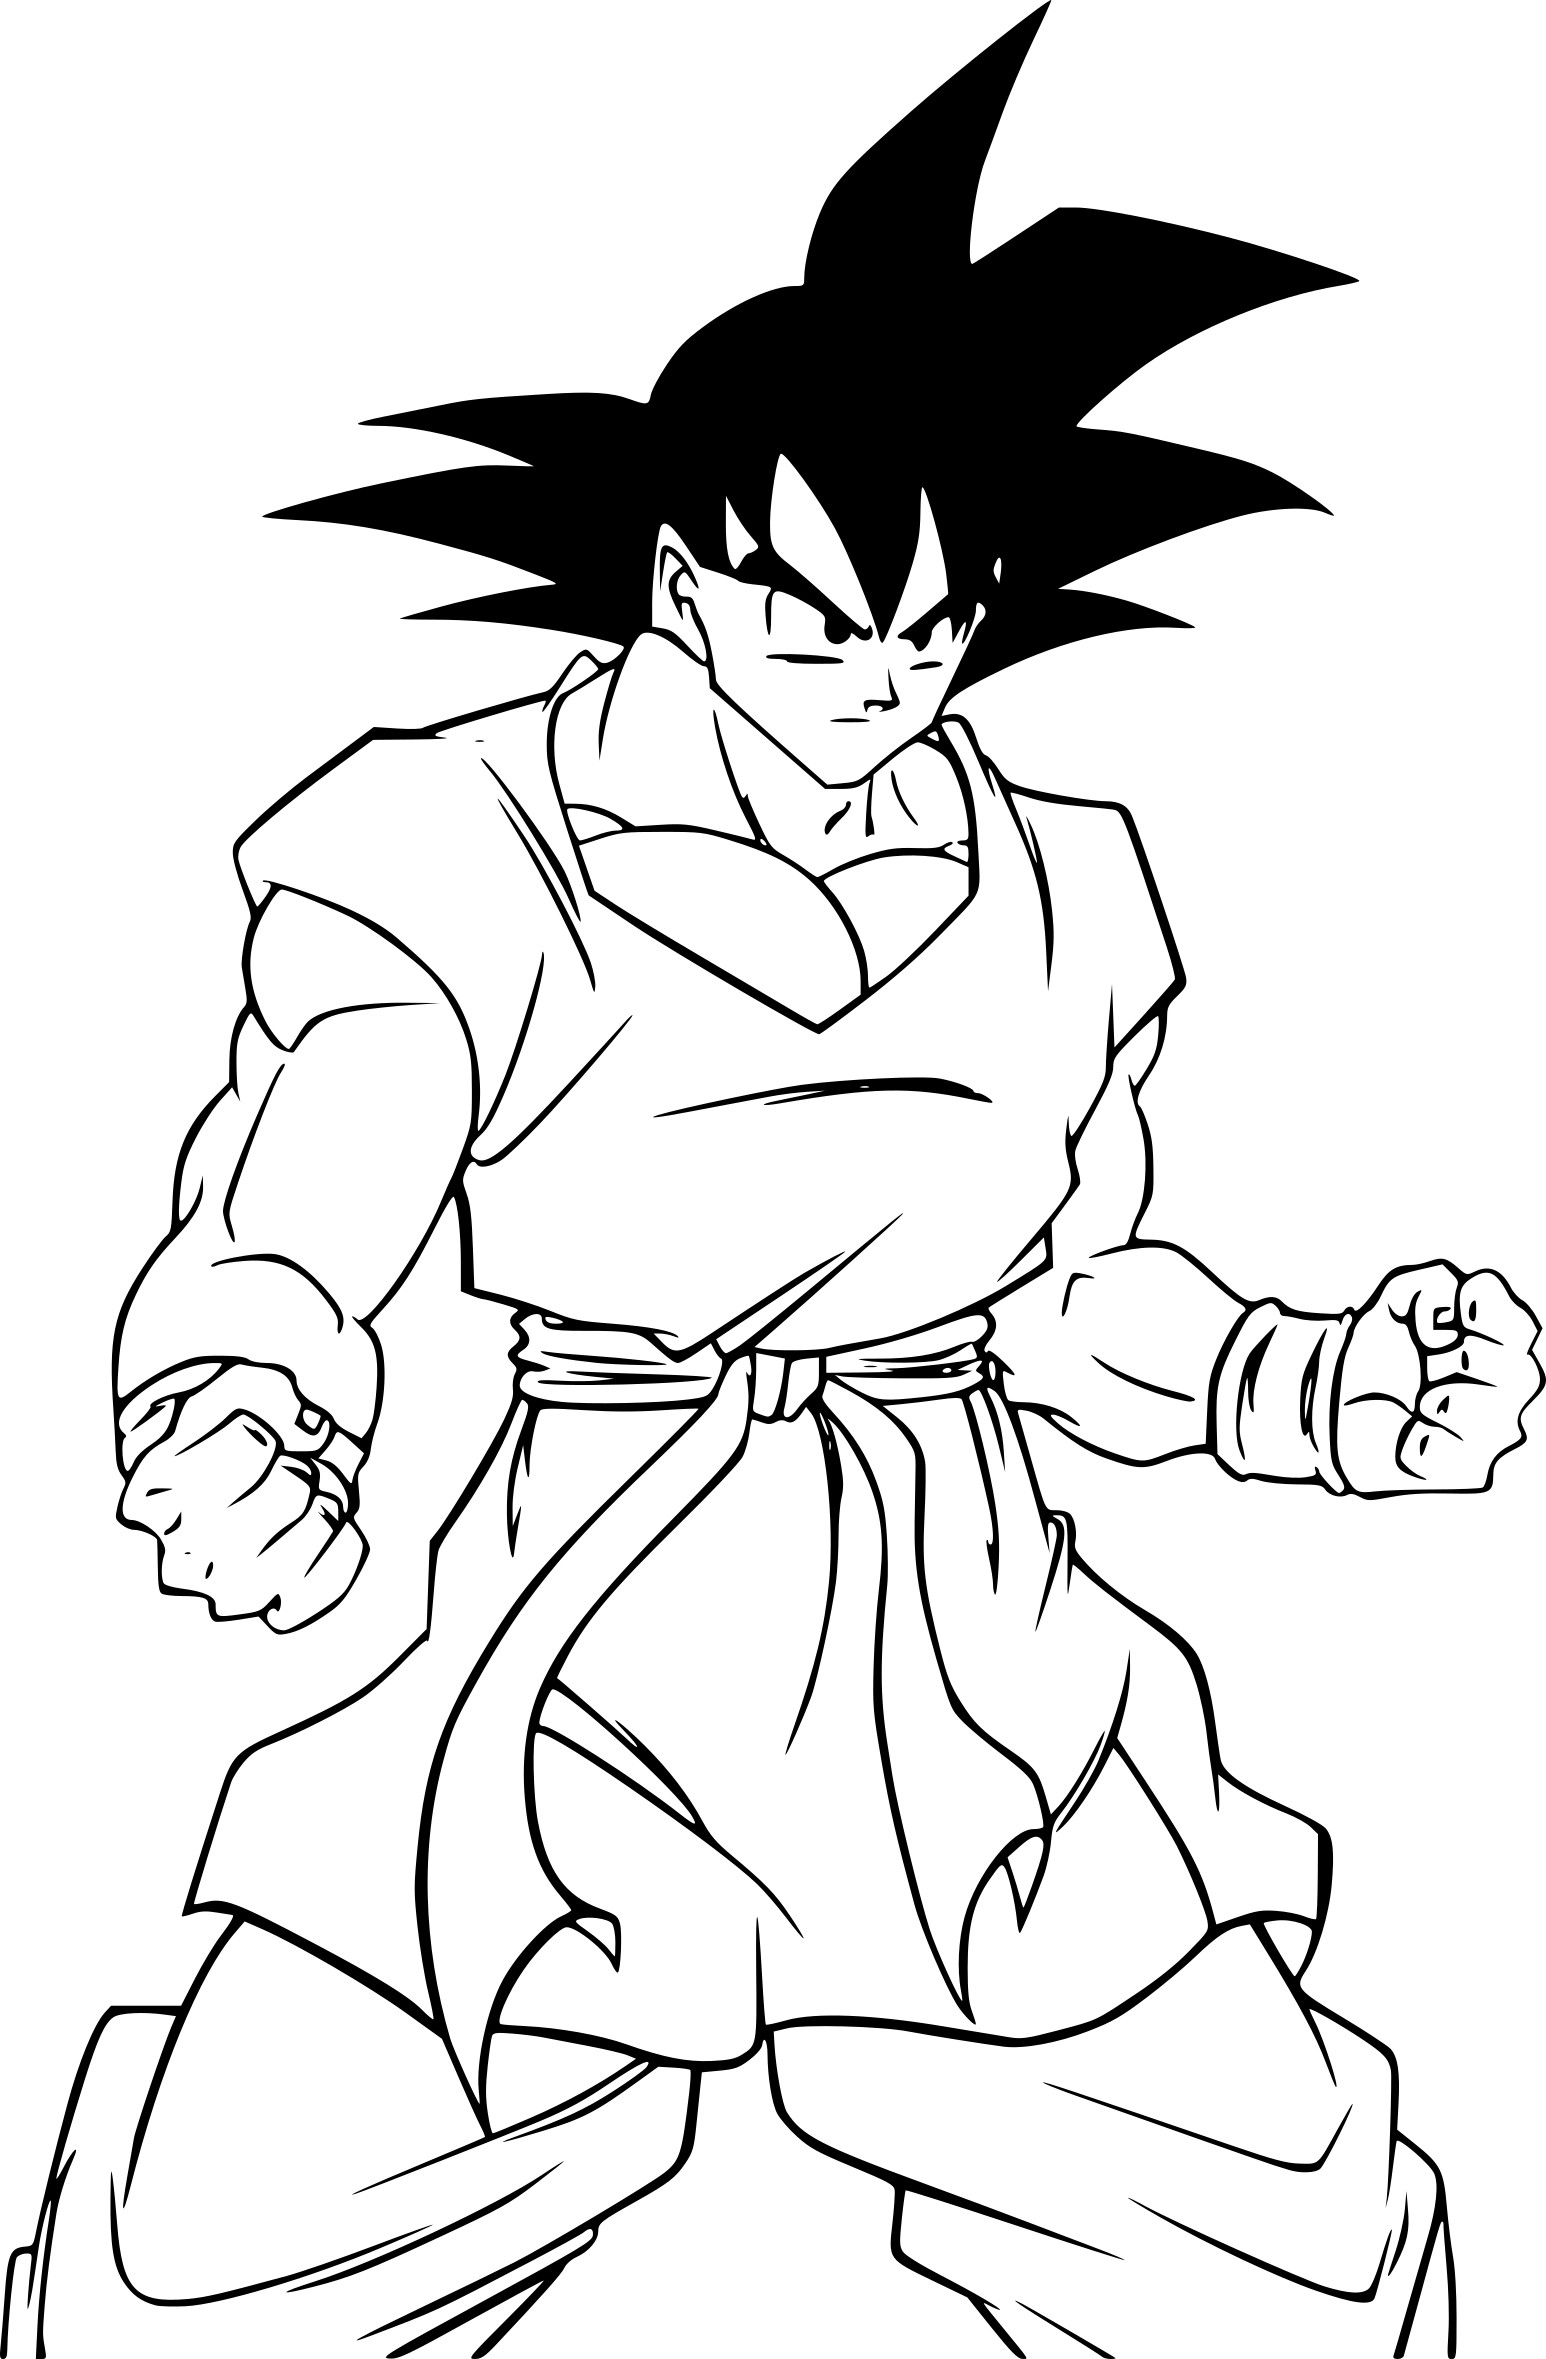 Coloriage son goku dragon ball z imprimer sur coloriages - Dessin de dragon ball za imprimer ...